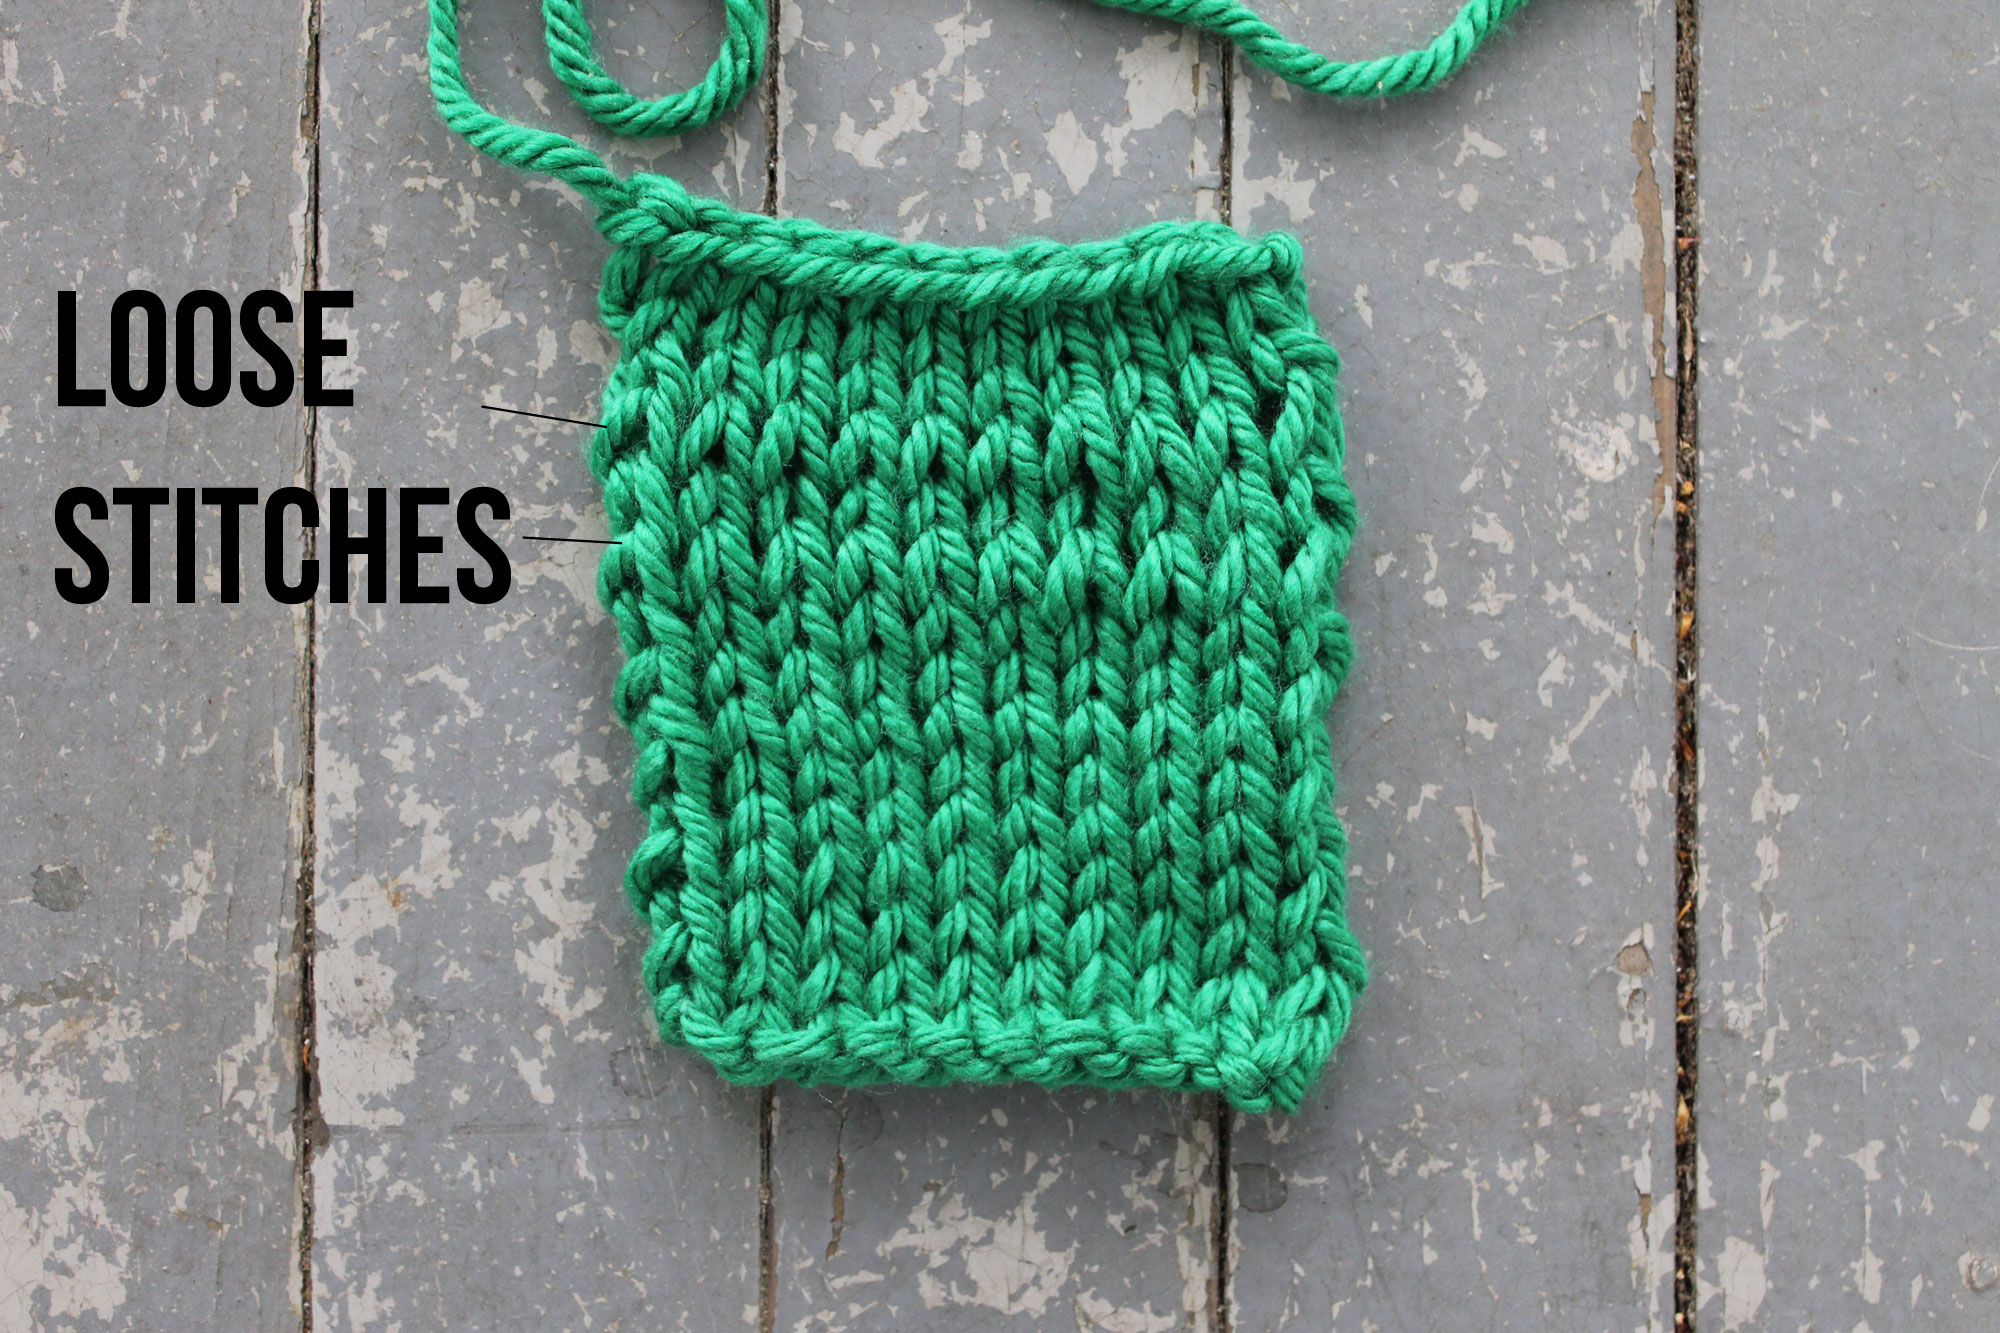 How to knit tighter stitches